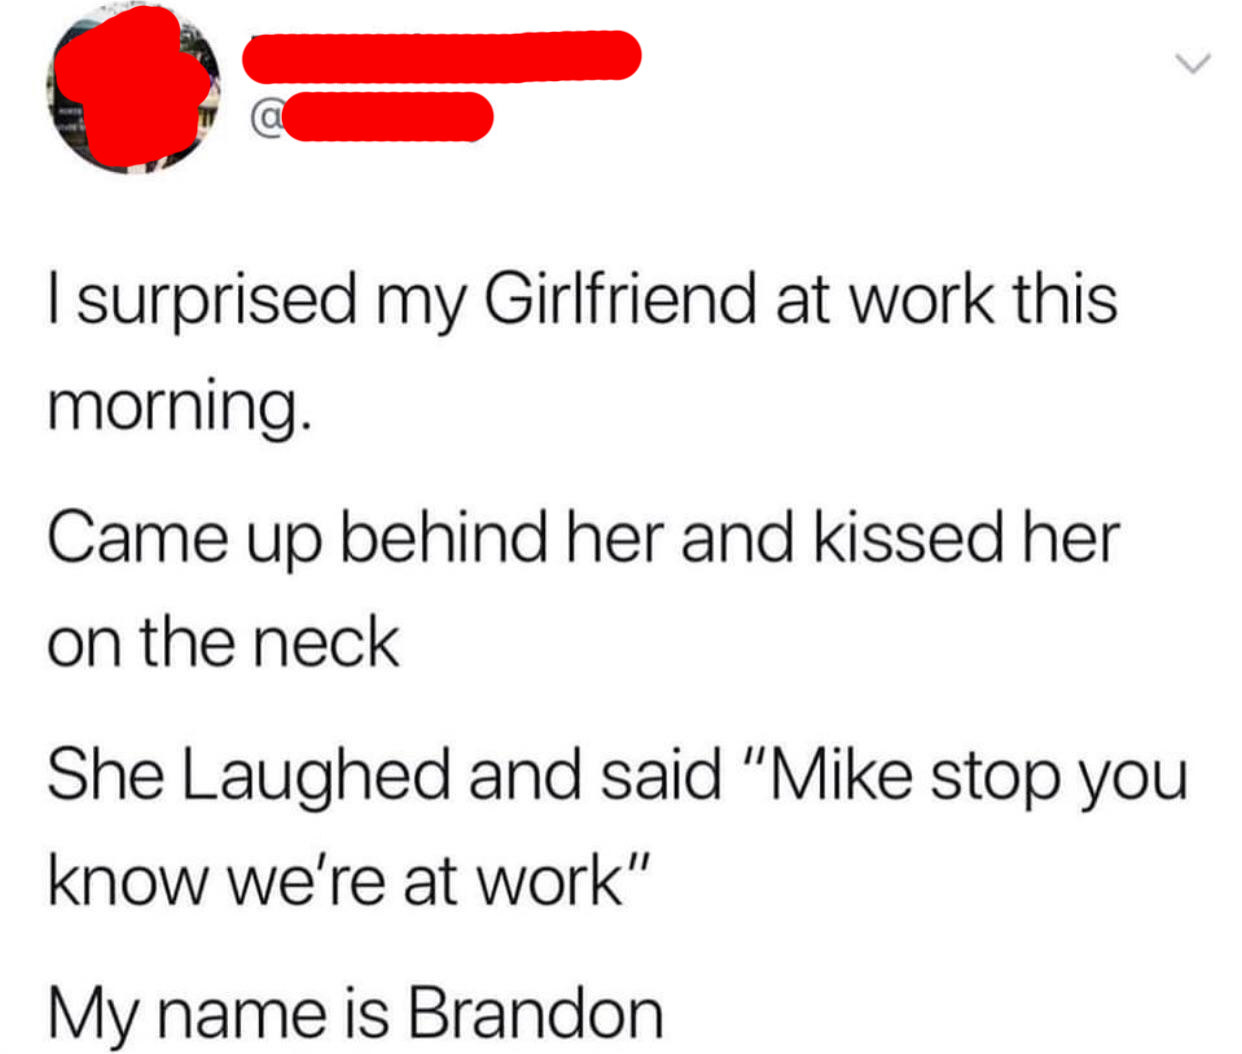 tweet reading i surprised my girlfriend at work this morning came up behind her and kiss her on the neck she laighed and said mike stop you know we're at work my name is brandon